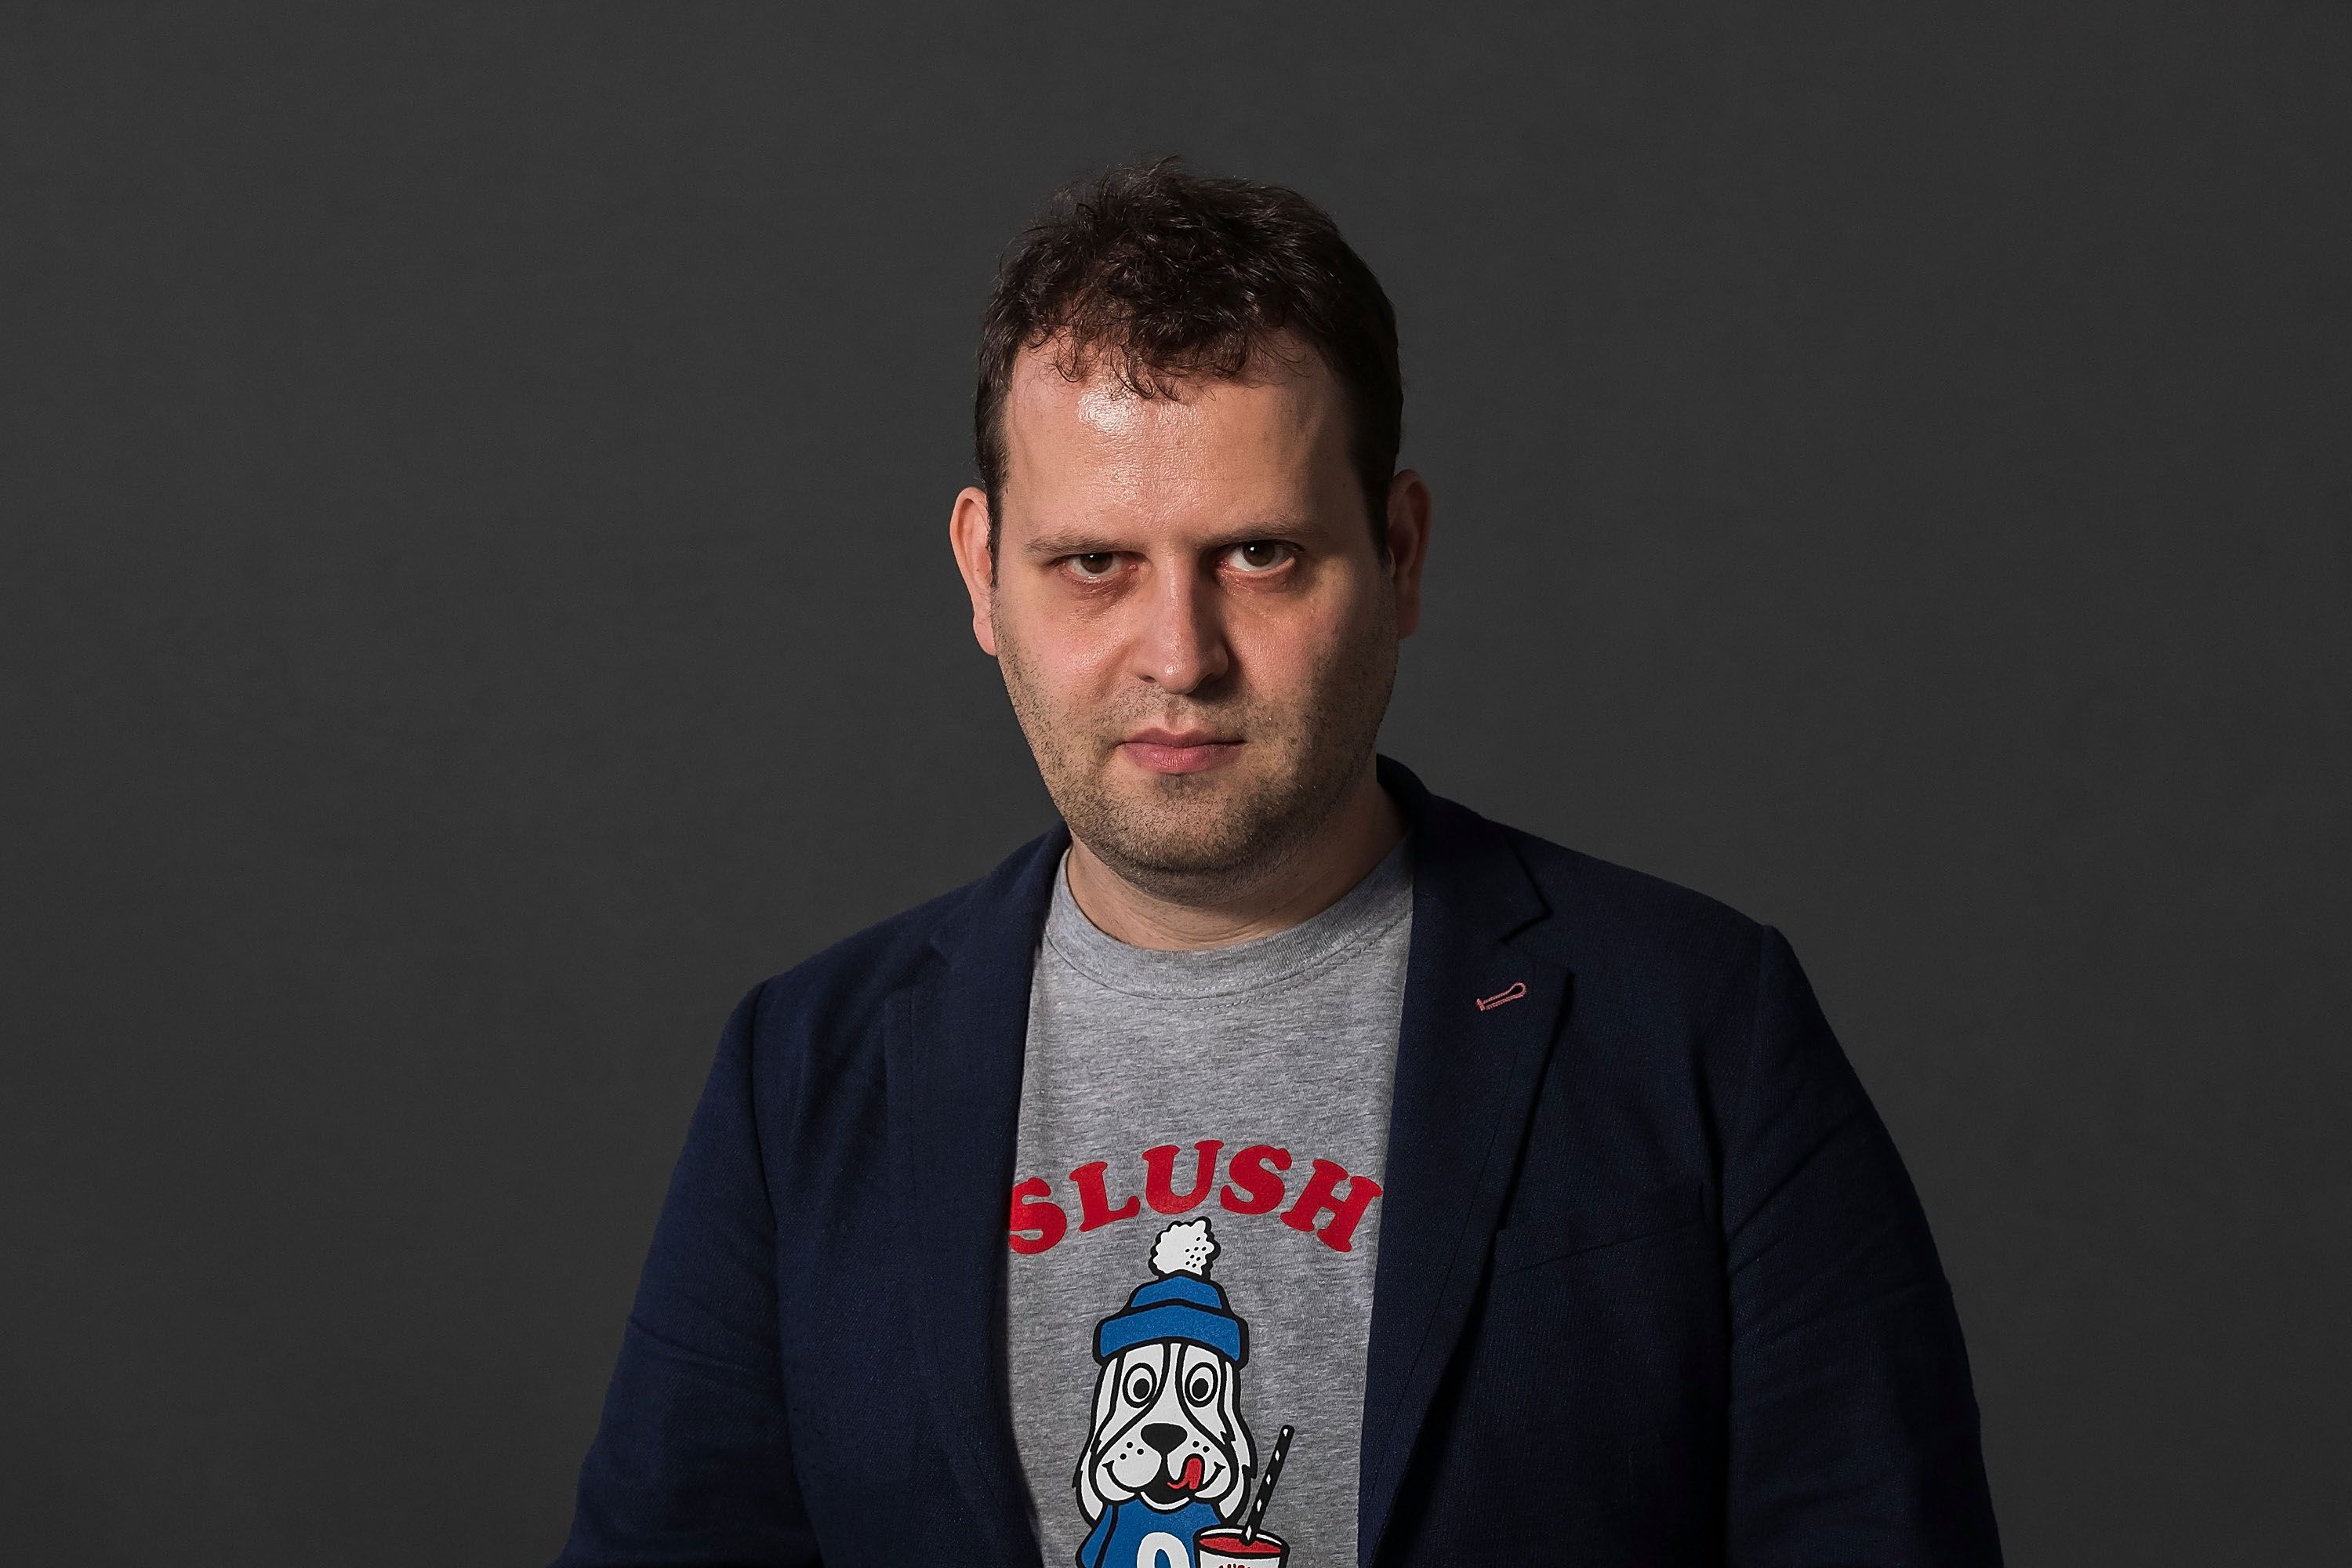 Adam Kay On 'This Is Going To Hurt', Sacha Baron Cohen And Saving The NHS